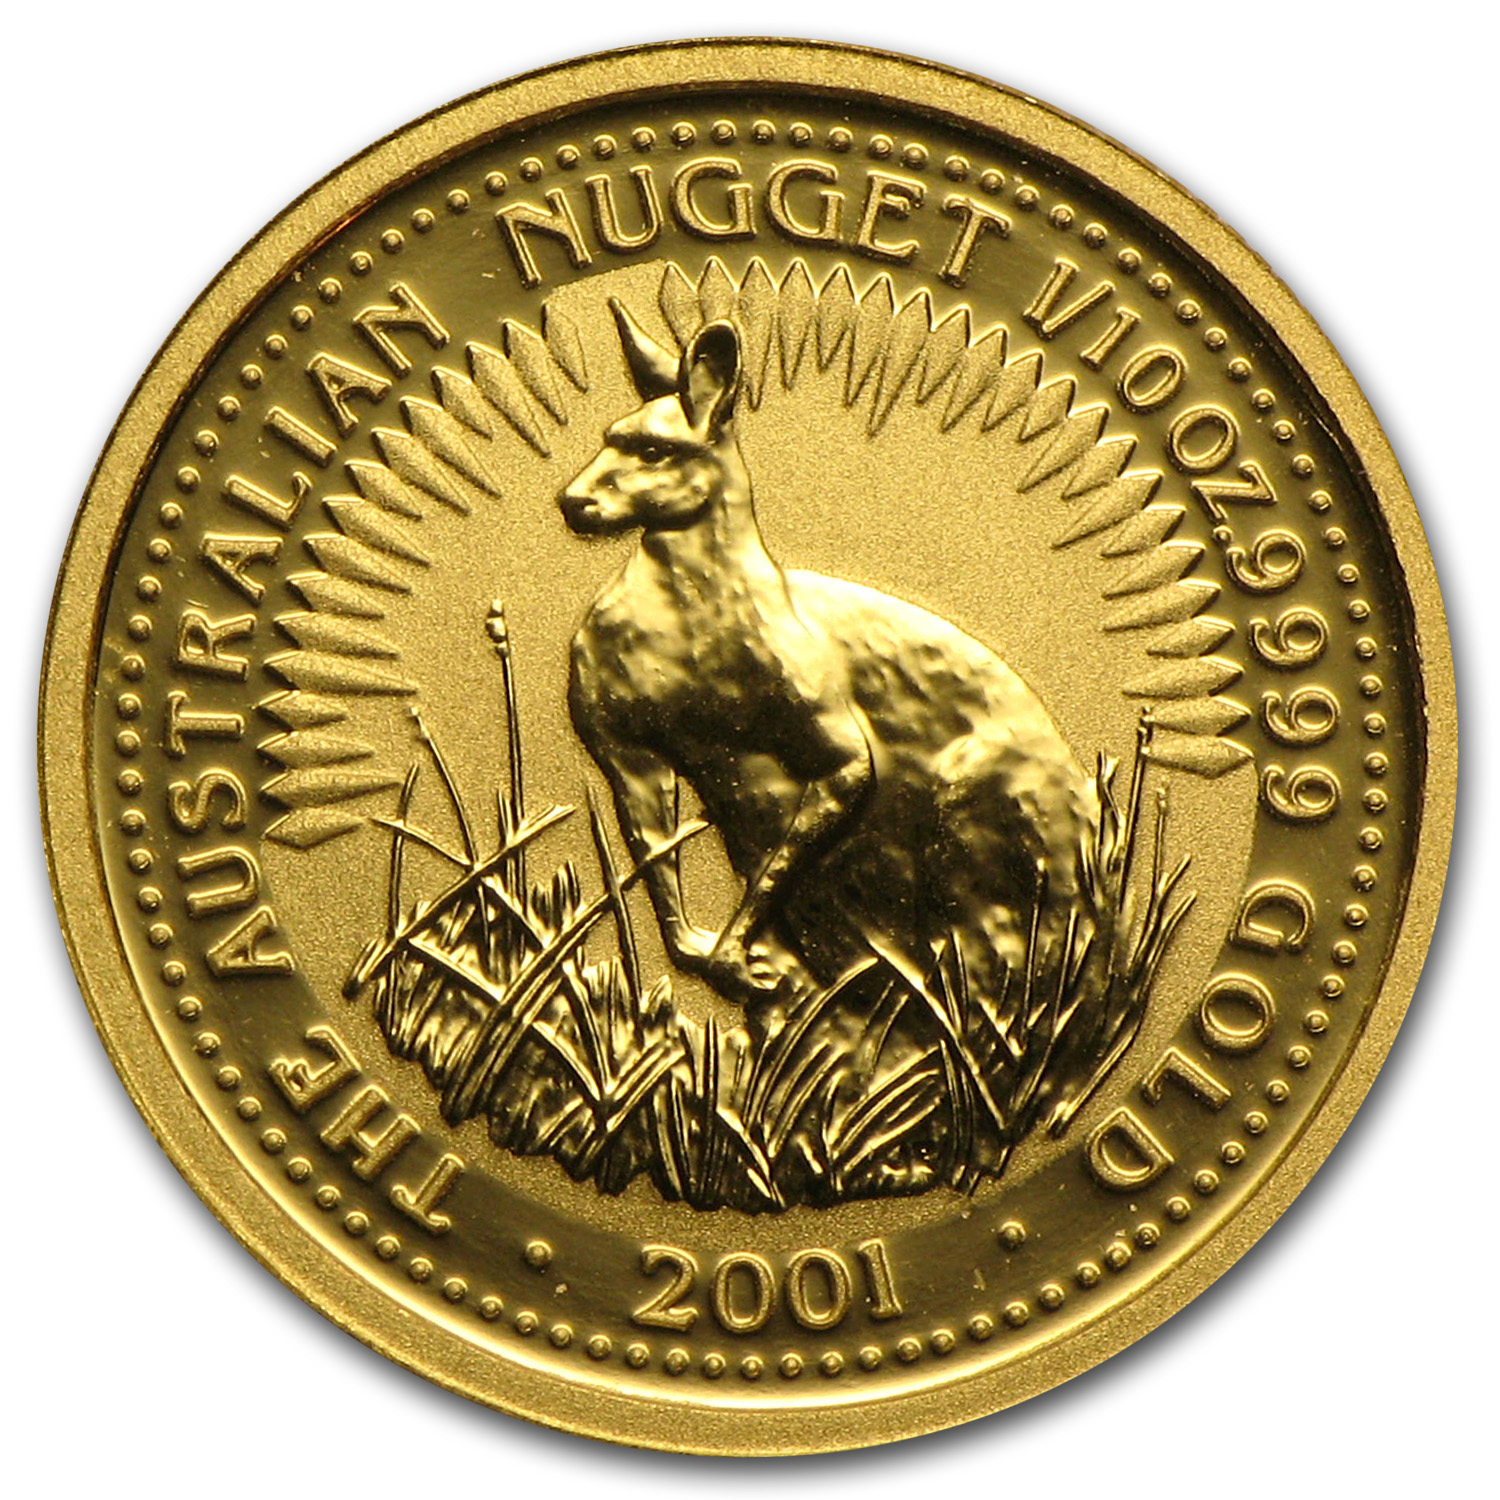 2001 1/10 oz Gold Australian Nugget